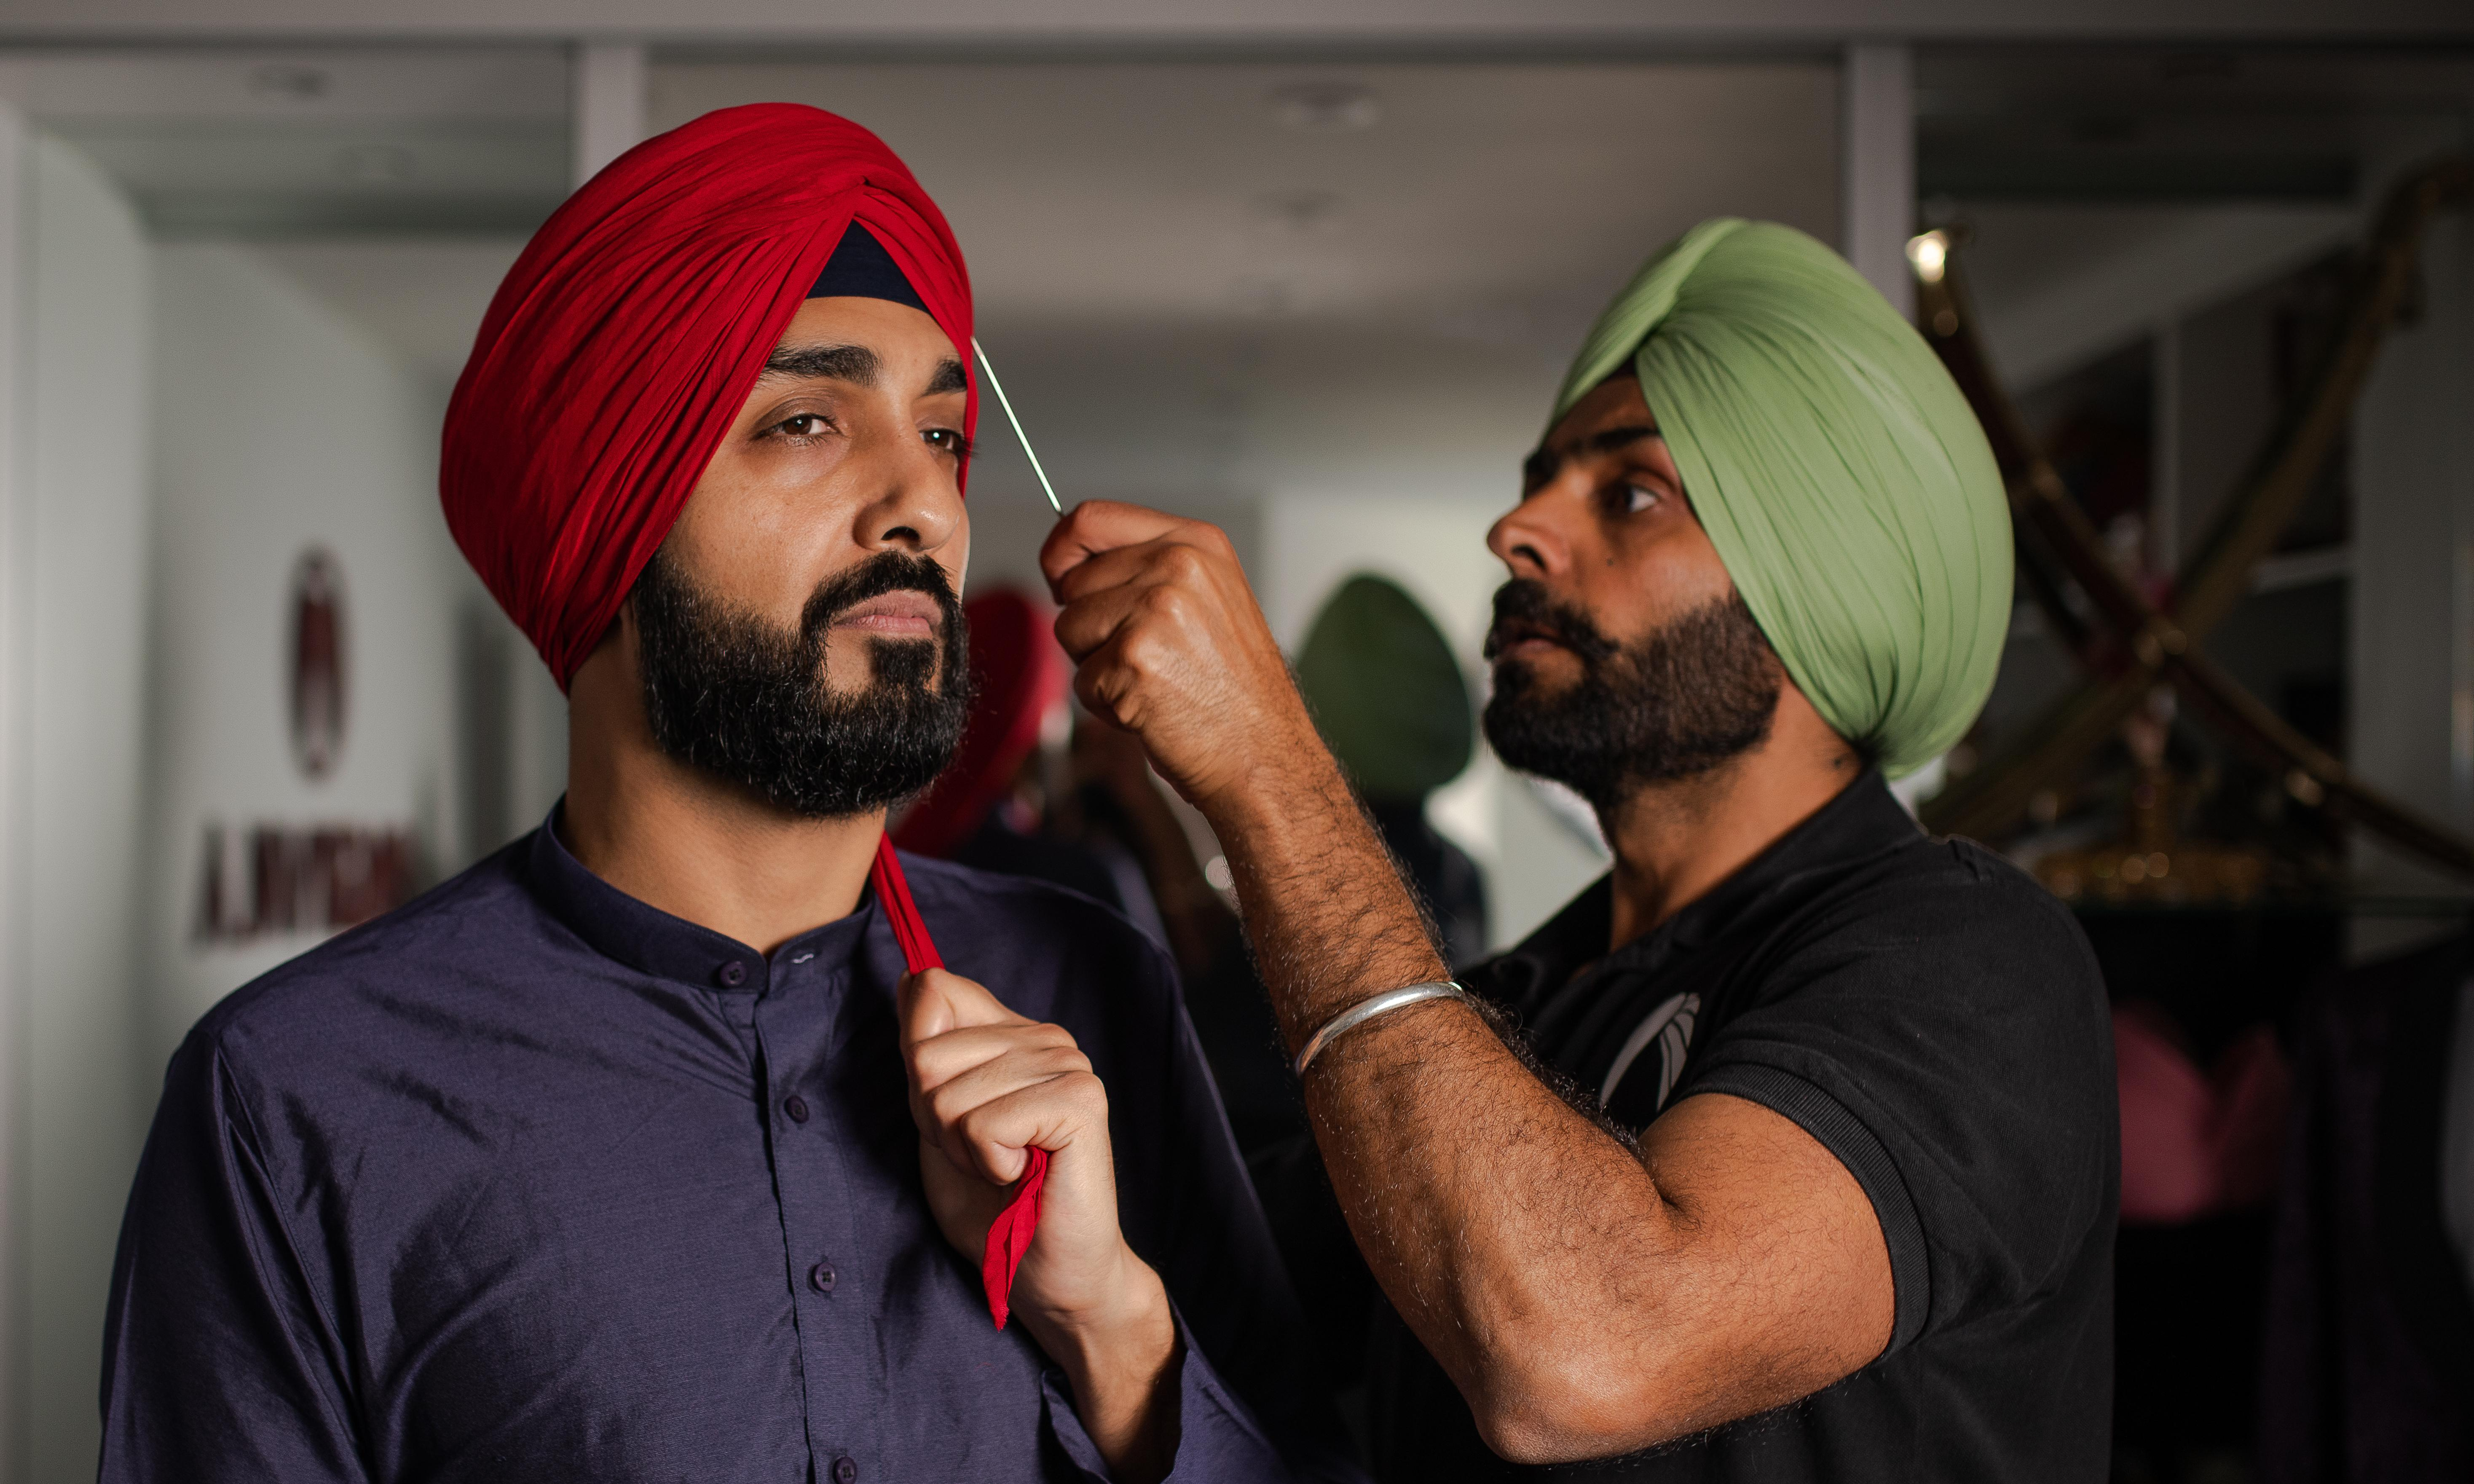 Turban-tying services boom as young Sikhs embrace heritage